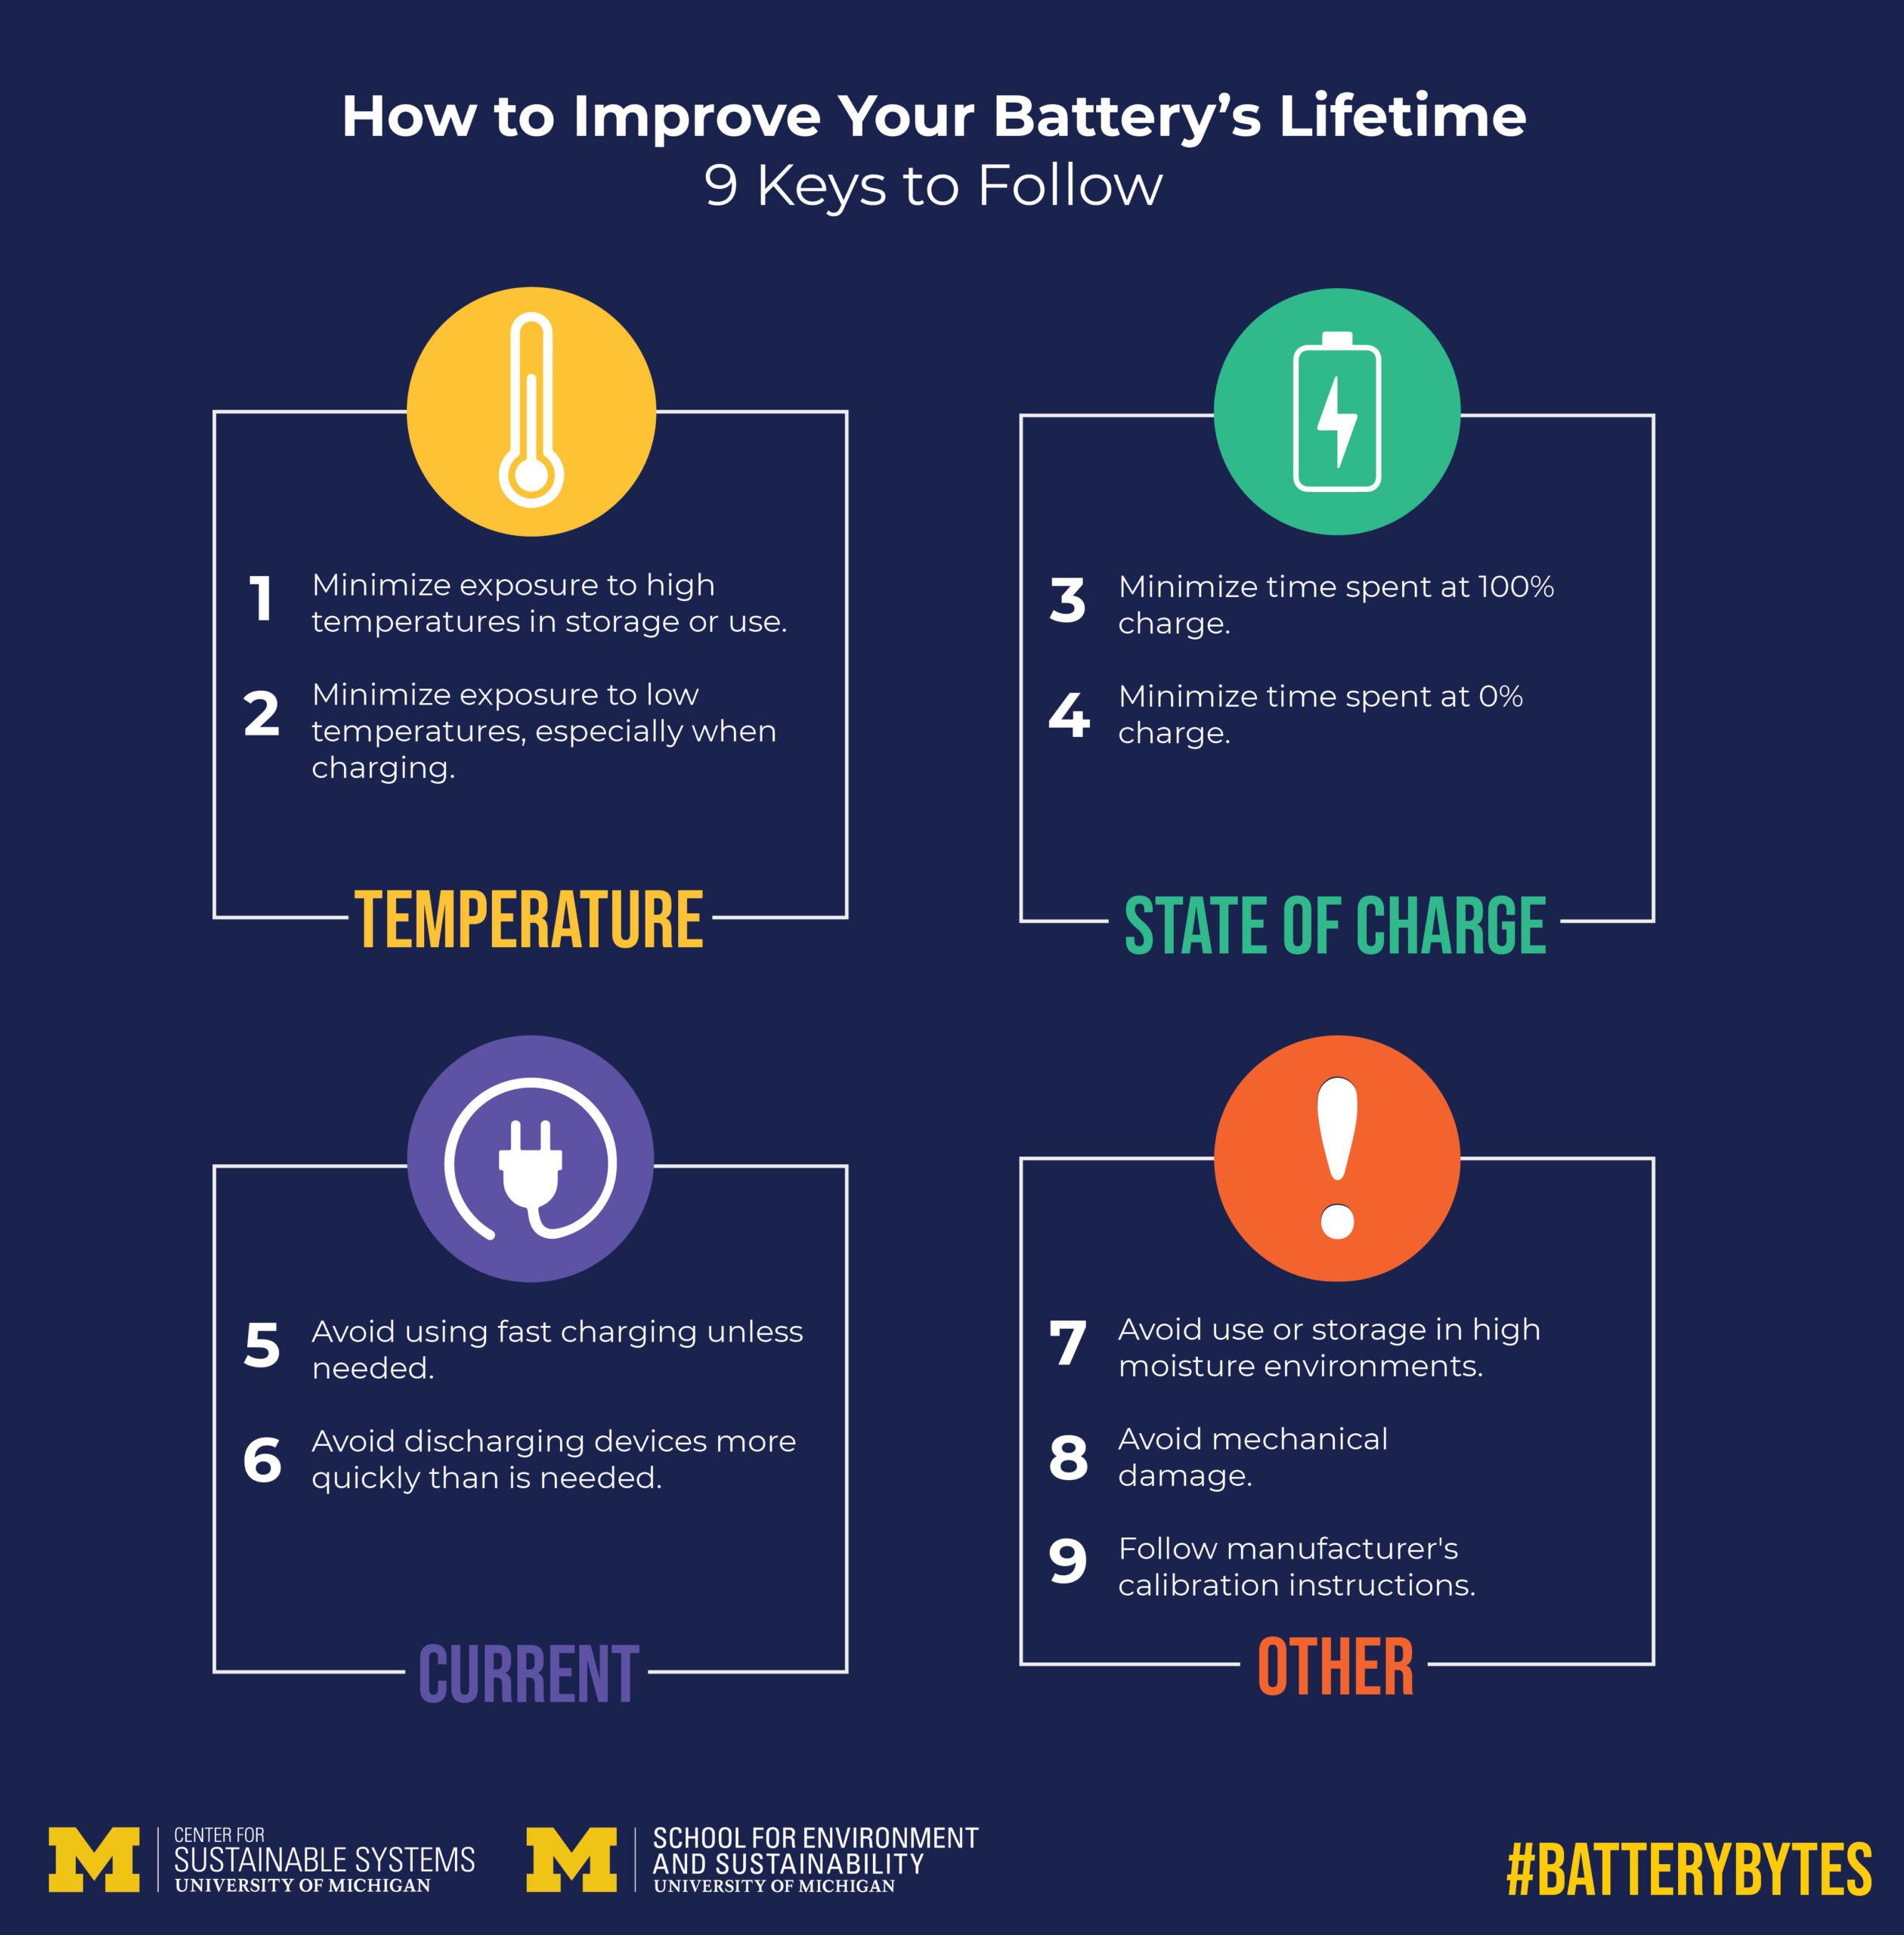 "Tips are broken into 4 categories. Under ""Temperature,"" tip 1 reads ""Minimize exposure to high temperatures in storage or use."" Tip 2 reads, ""Minimize exposure to low temperatures, especially when charging."" Under ""State of Charge"" tip 3 reads, ""Minimize time spent at 100% charge."" Tip 4 reads, ""Minimize time spent at 0%."" Under ""Current,"" tip 5 reads ""Avoid using fast charging unless needed."" Tip 6 reads, ""Avoid discharging devices more quickly than is needed."" Under ""Other,"" tip 7 reads, ""Avoid use or storage in high moisture environments."" Tip 8 reads, ""Avoid mechanical damage."" Tip 9 reads, Follow manufacturer's calibration instructions."""